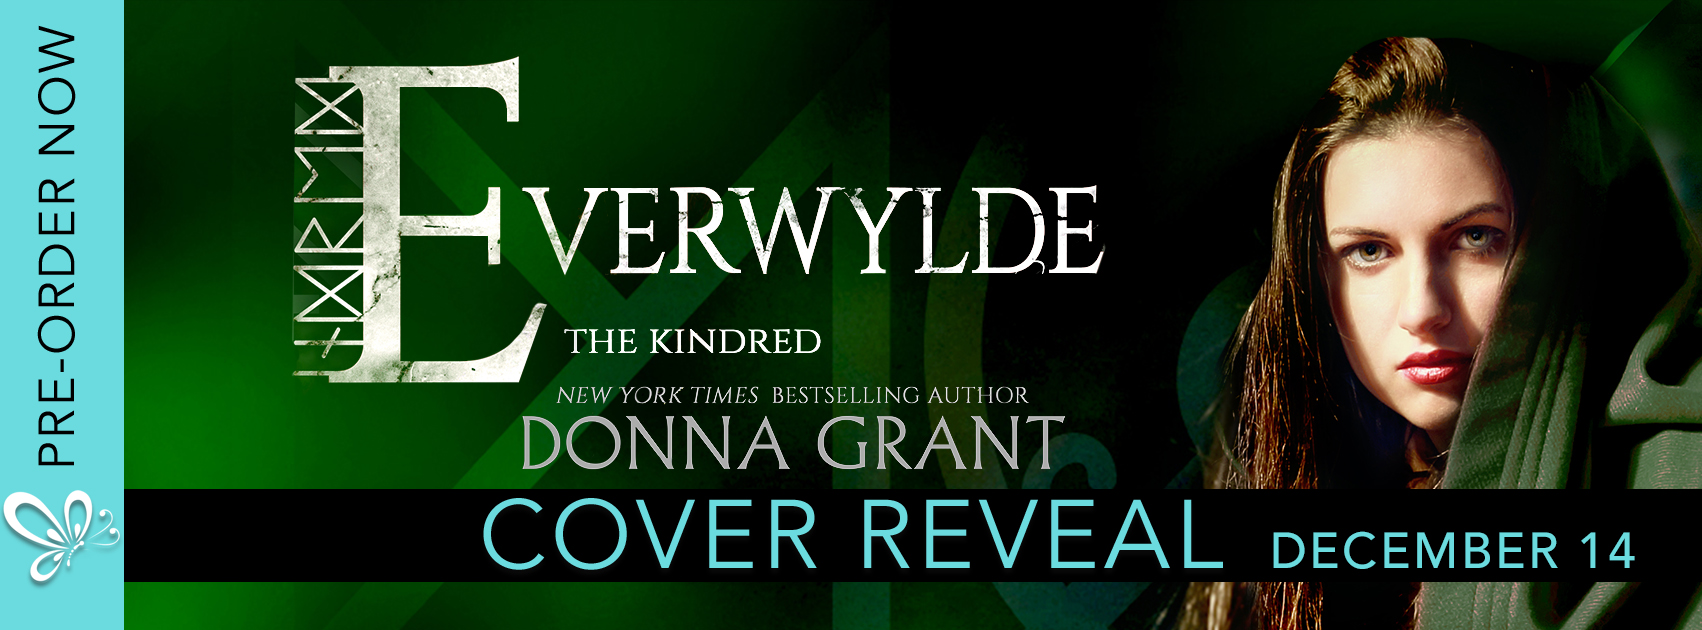 EVERWYLDE_COVER REVEAL-2.jpg